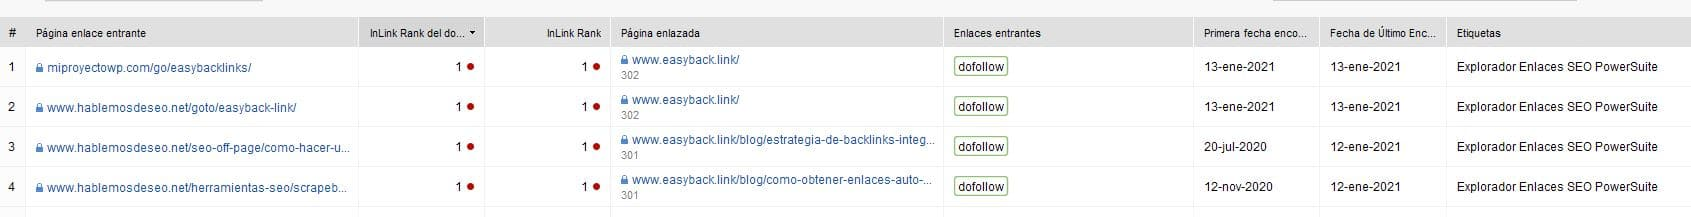 seo spyglass - listado de backlinks